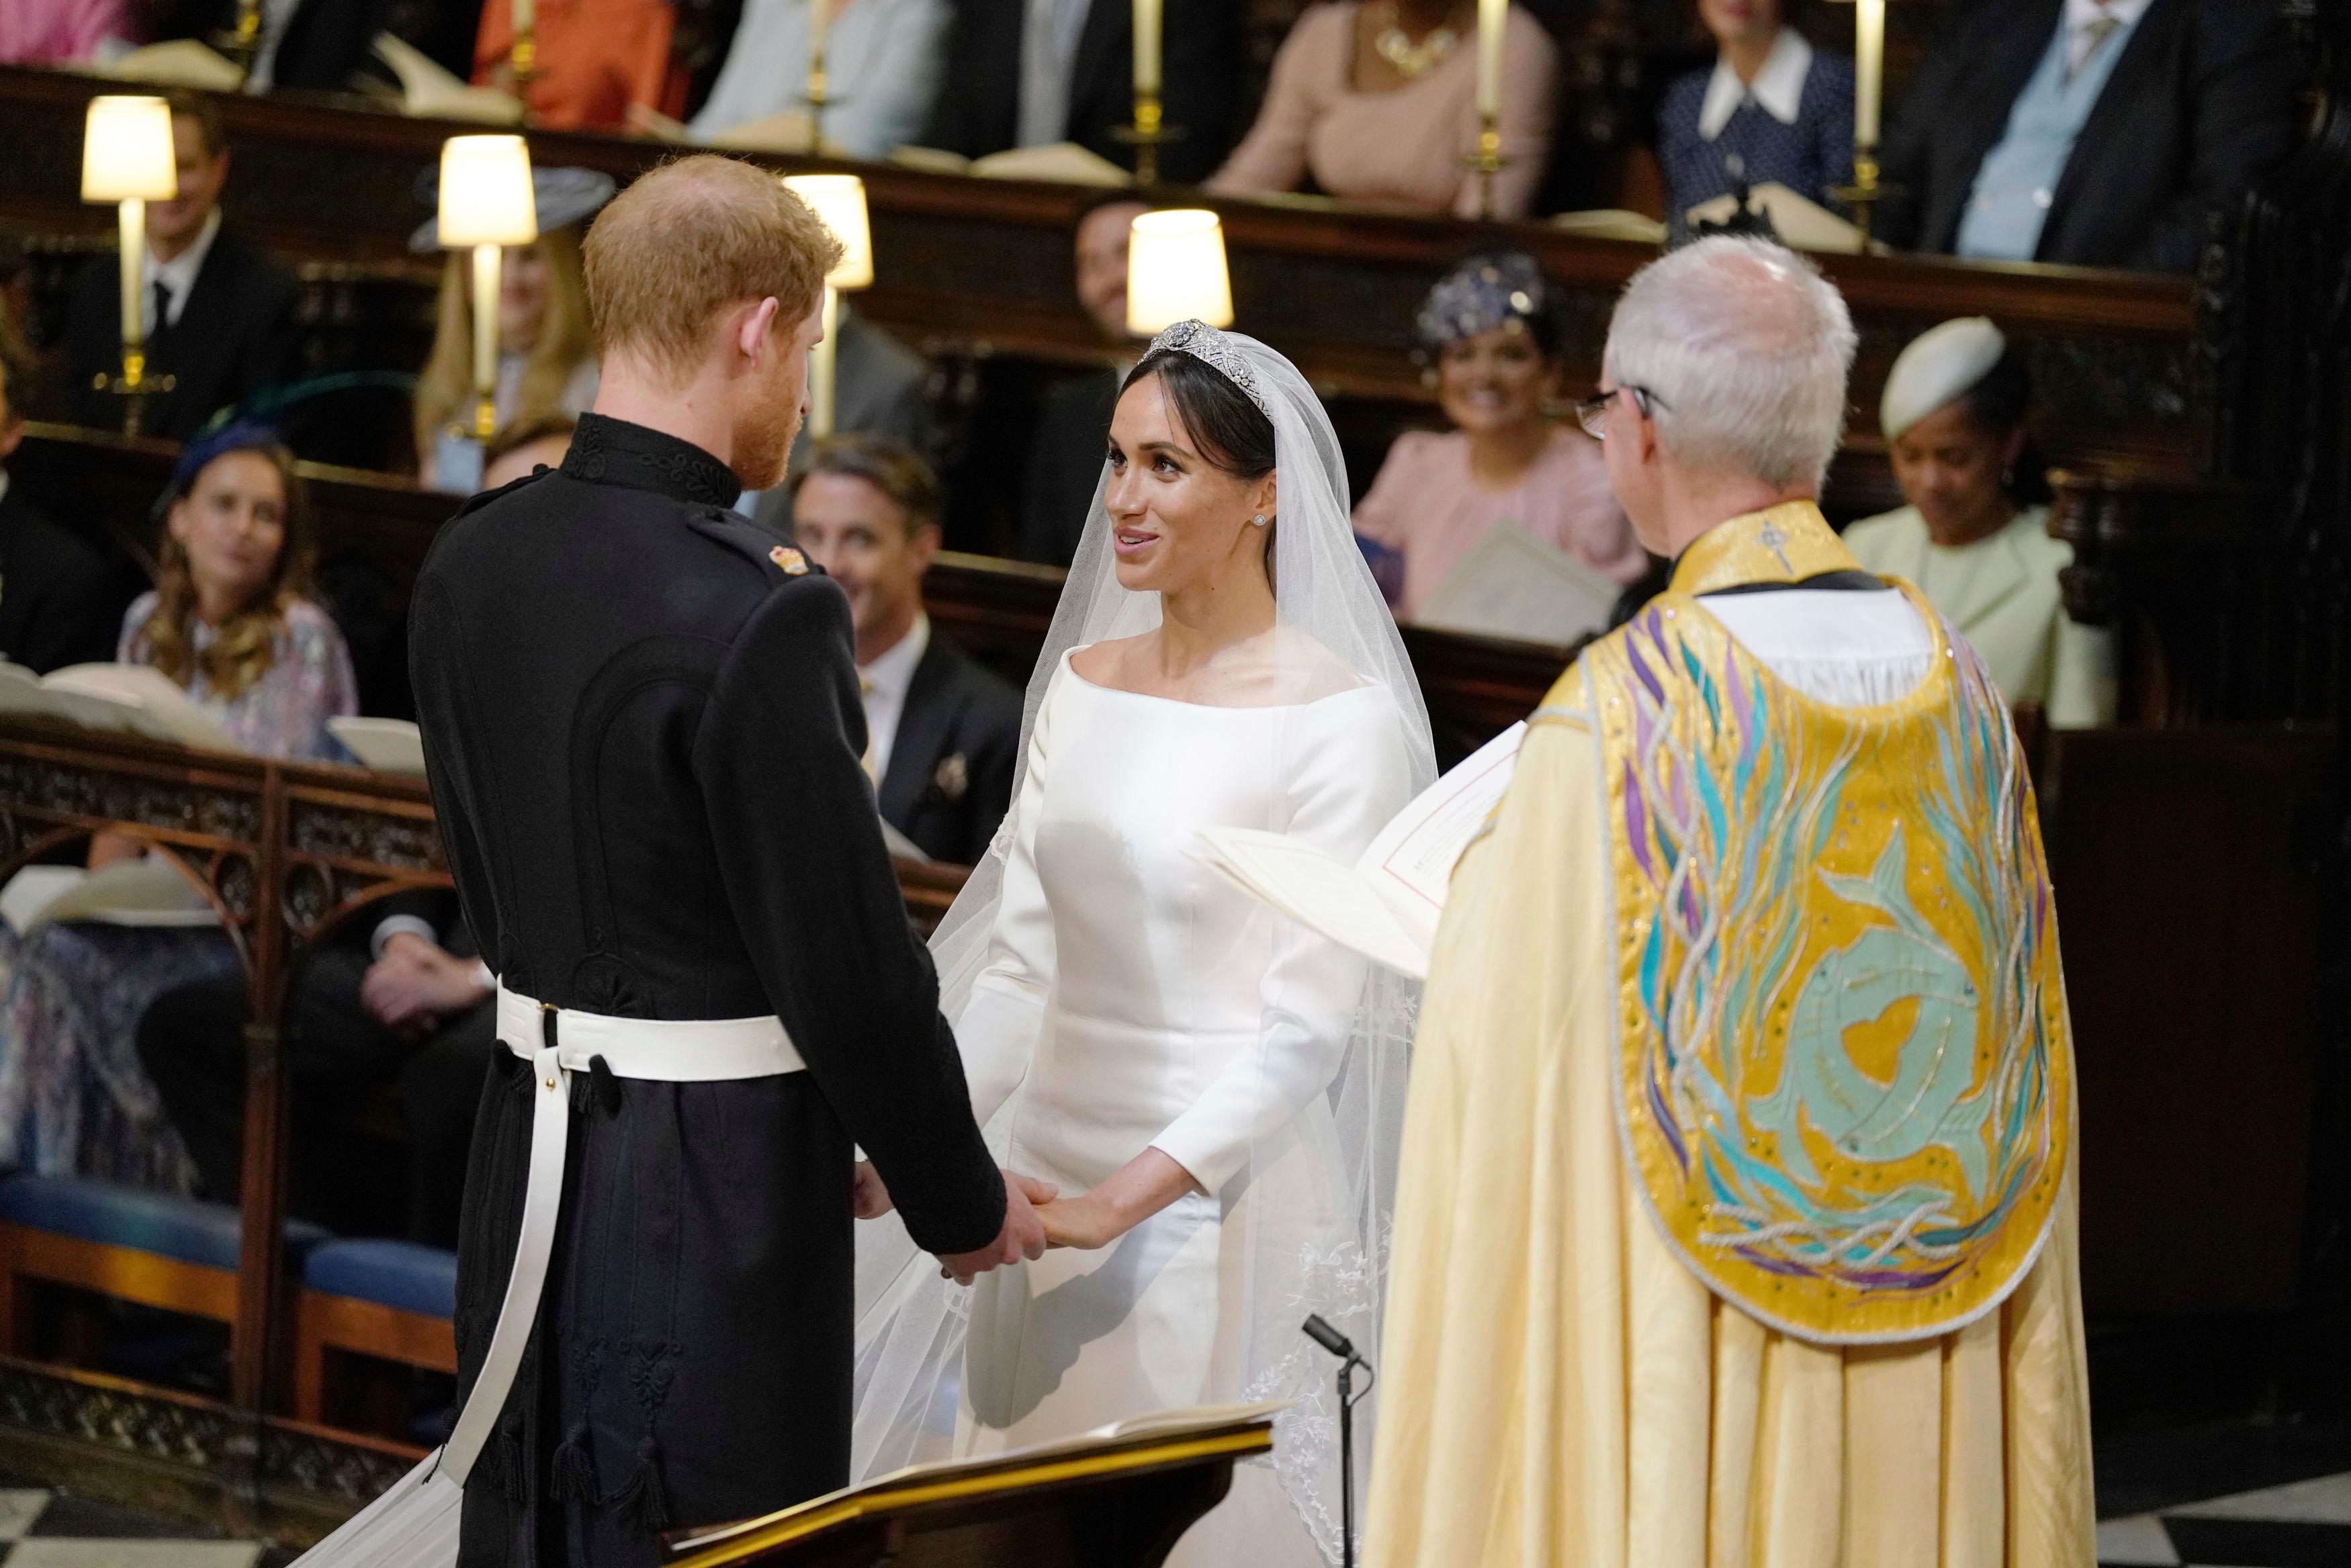 Britain's Prince Harry and Meghan Markle hold hands during their wedding ceremony oin St. George's Chapel in Windsor Castle in Windsor, near London, England, Saturday, May 19, 2018. (Dominic Lipinski/pool photo via AP)